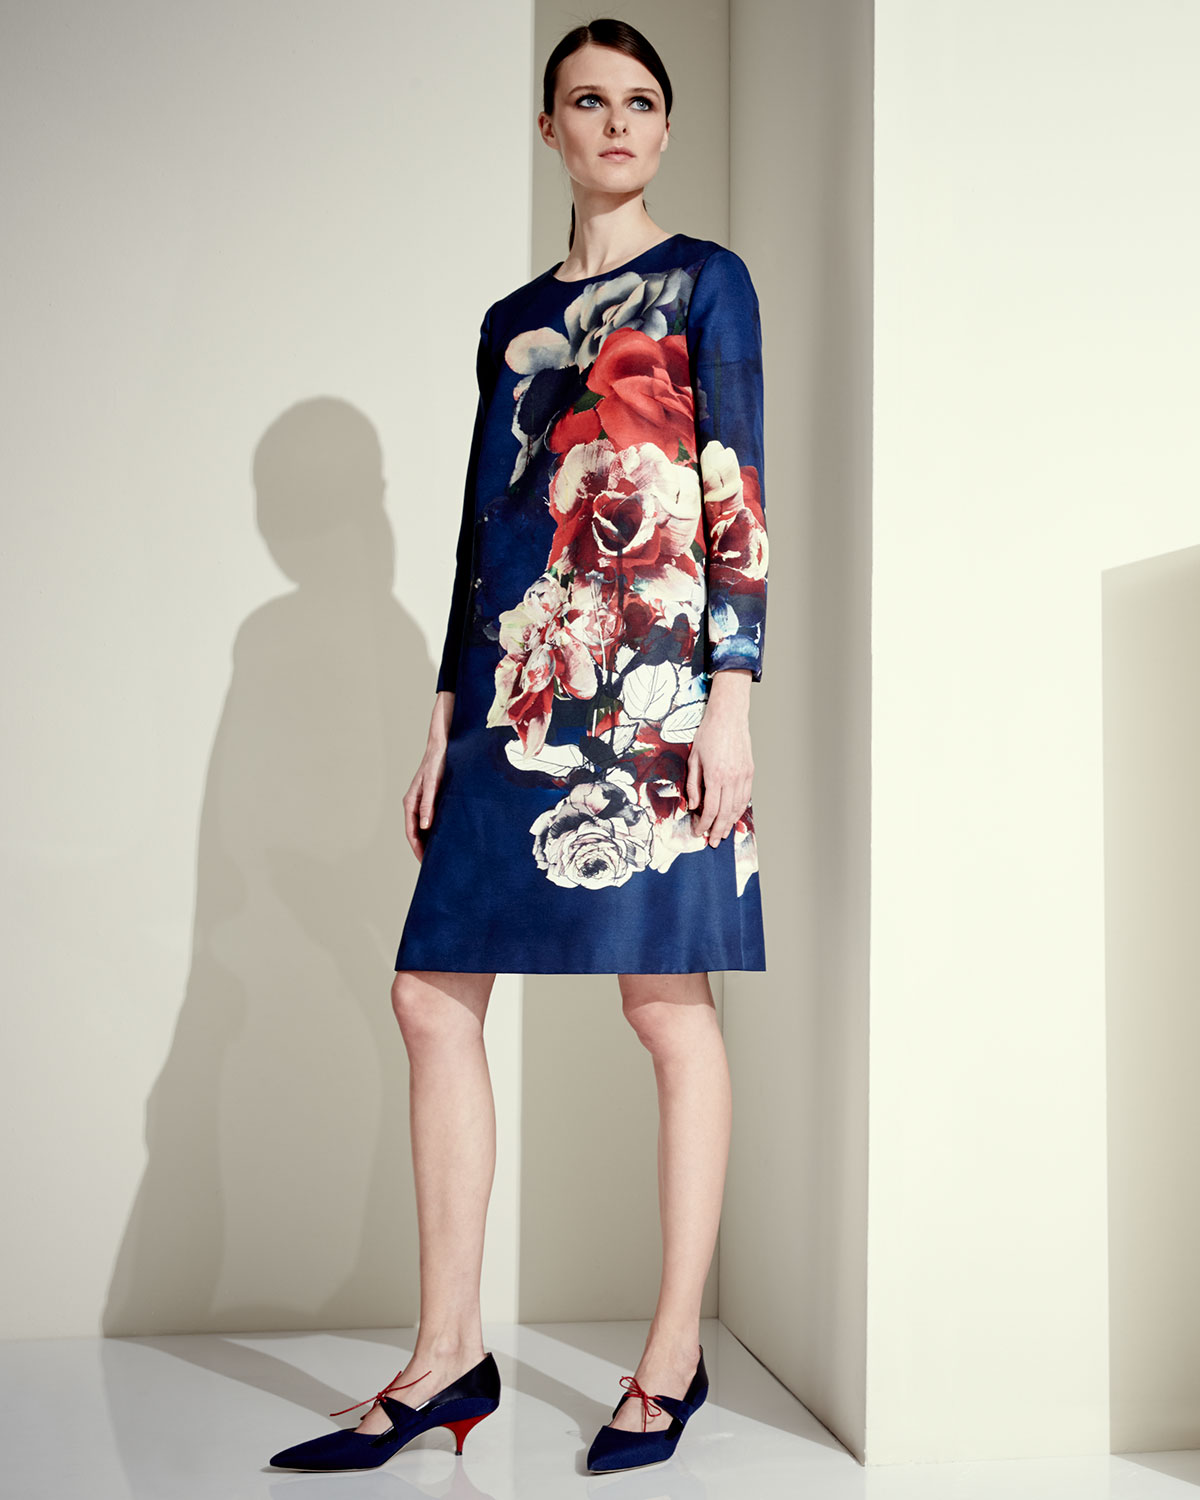 Carolina Herrera Lookbook